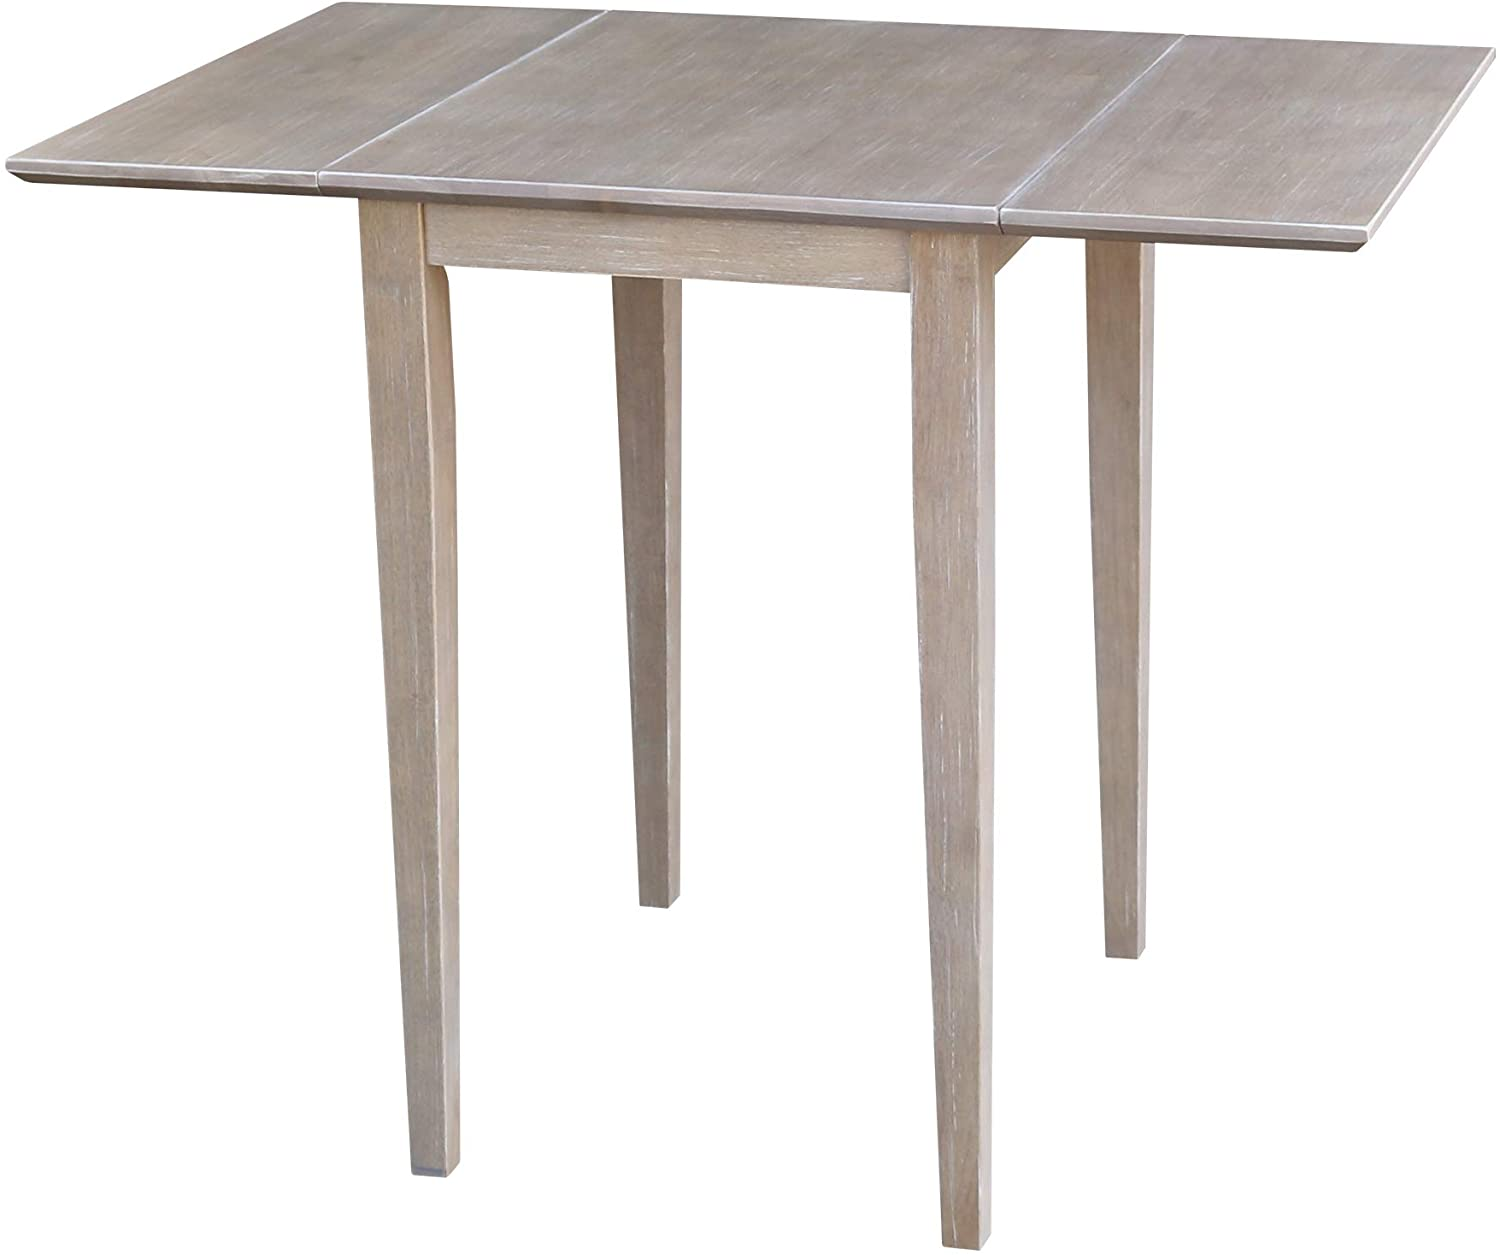 International Concepts Small Dropleaf Table, Washed Gray Taupe